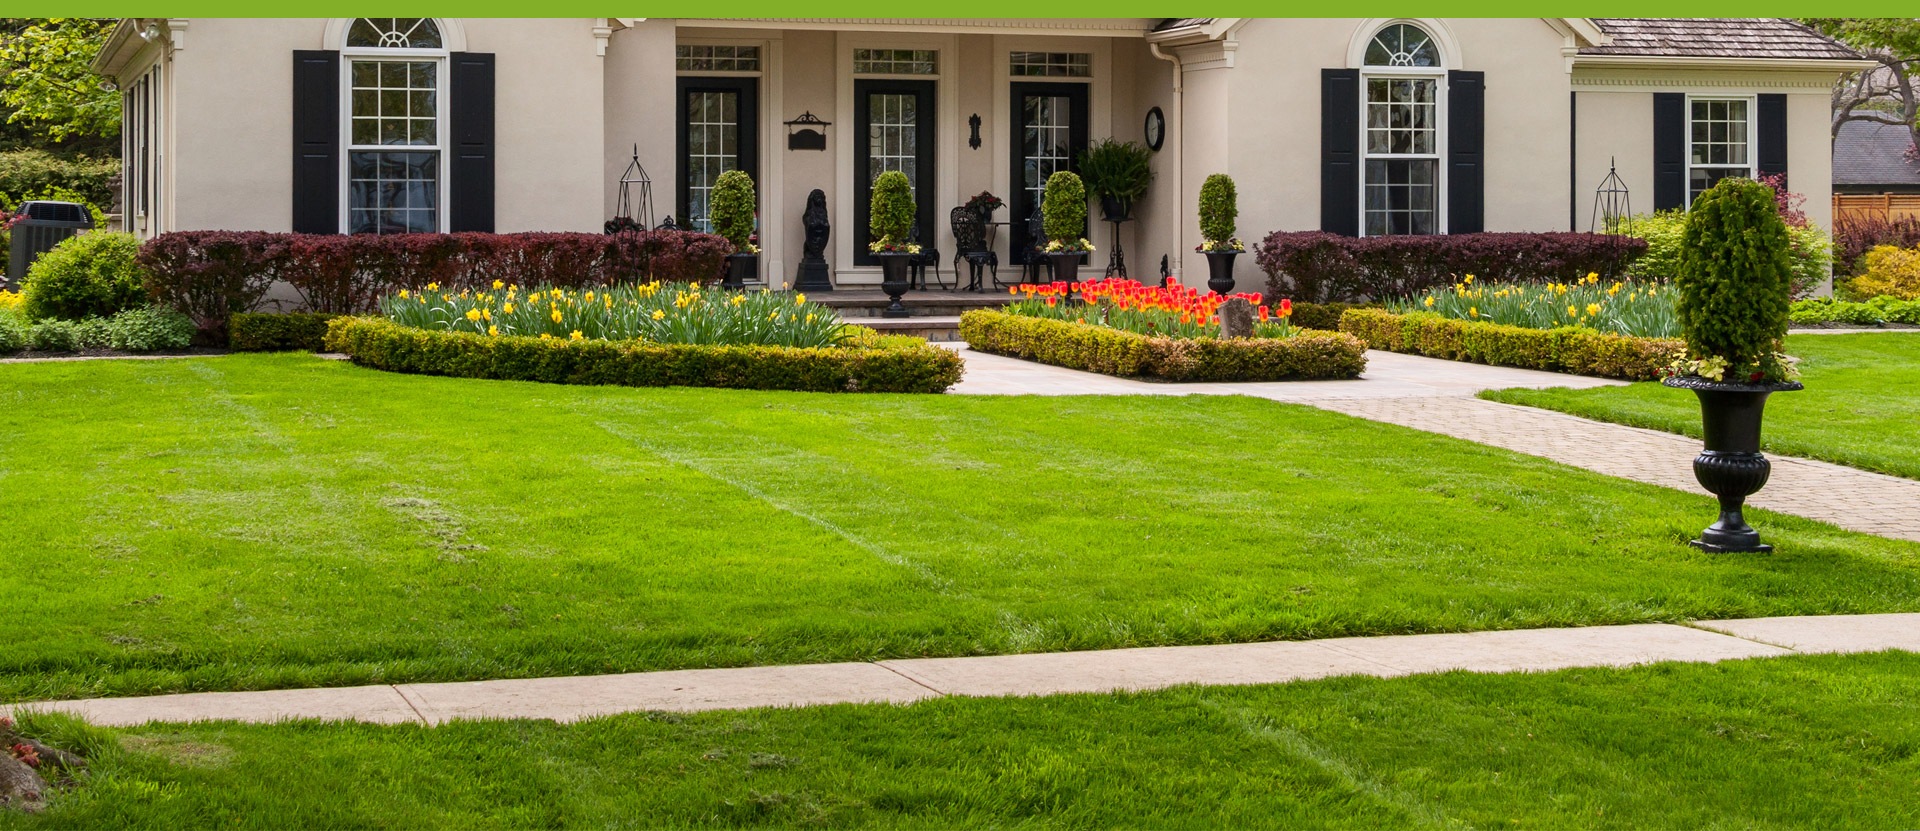 38 Homes That Turned Their Front Lawns Into Beautiful: Lawn Maintenance / Tree Work / Snow Removal